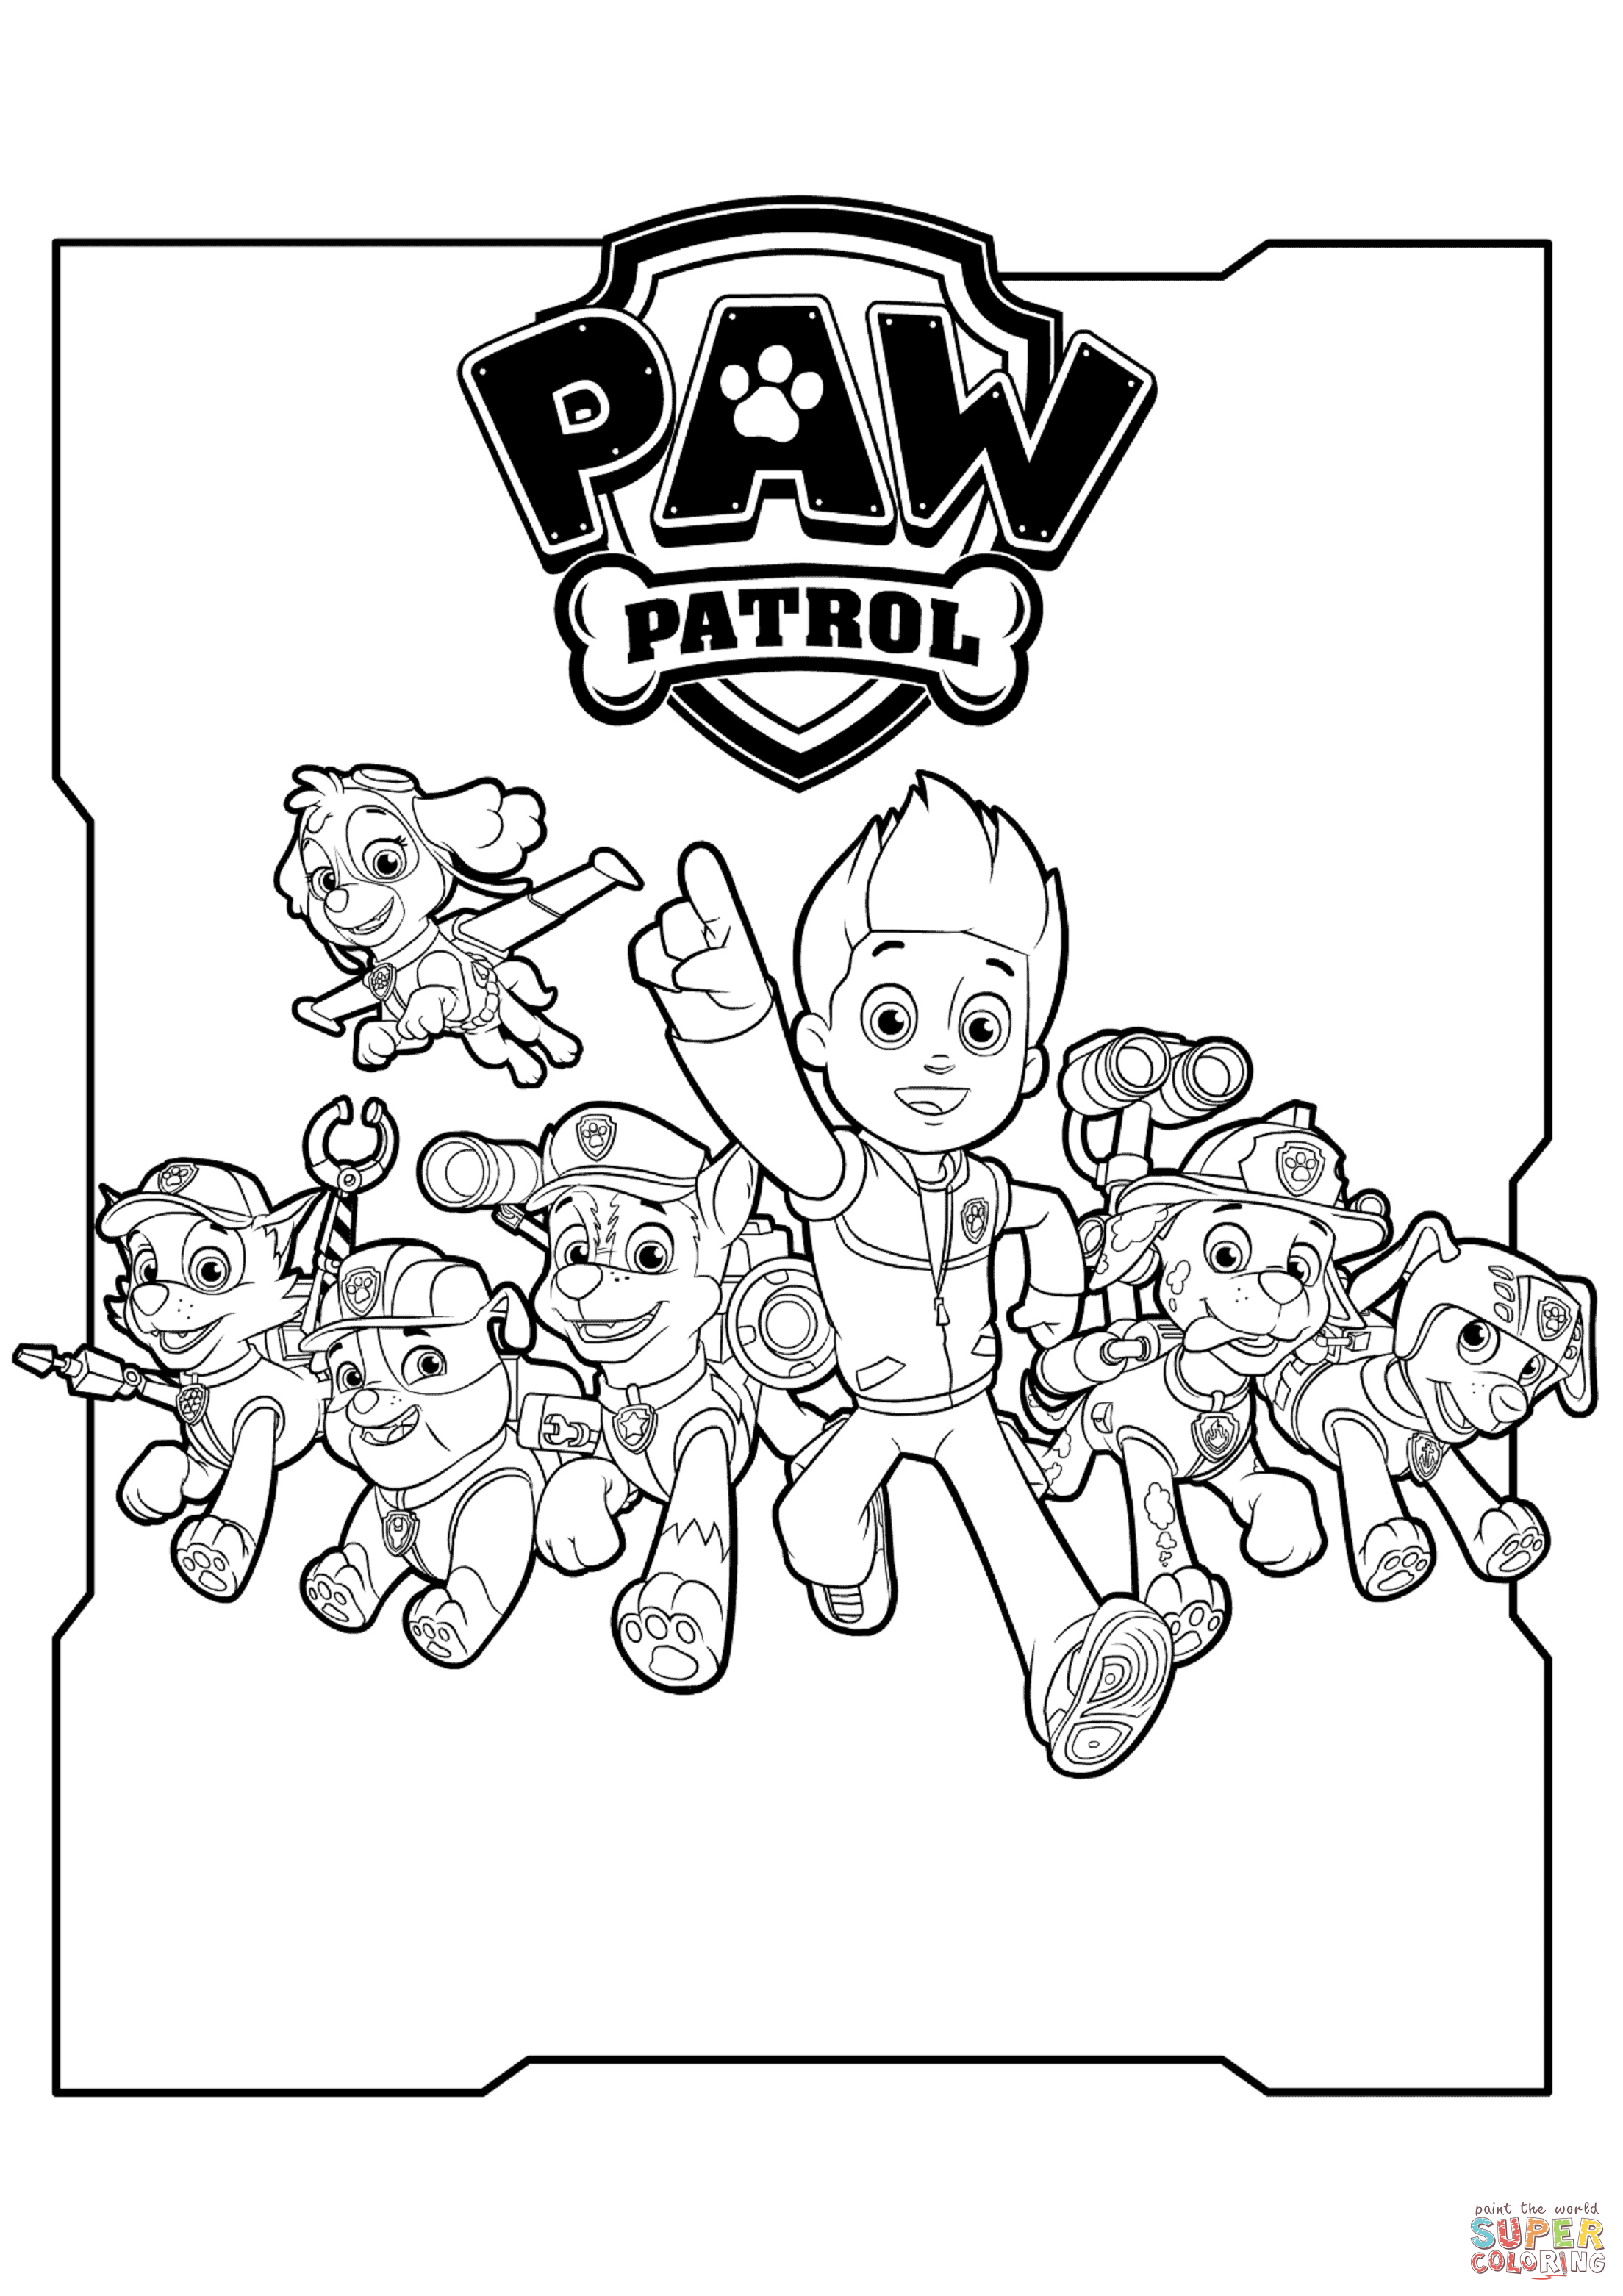 paw patrol coloring outline all paw patrol characters coloring page free printable outline patrol paw coloring